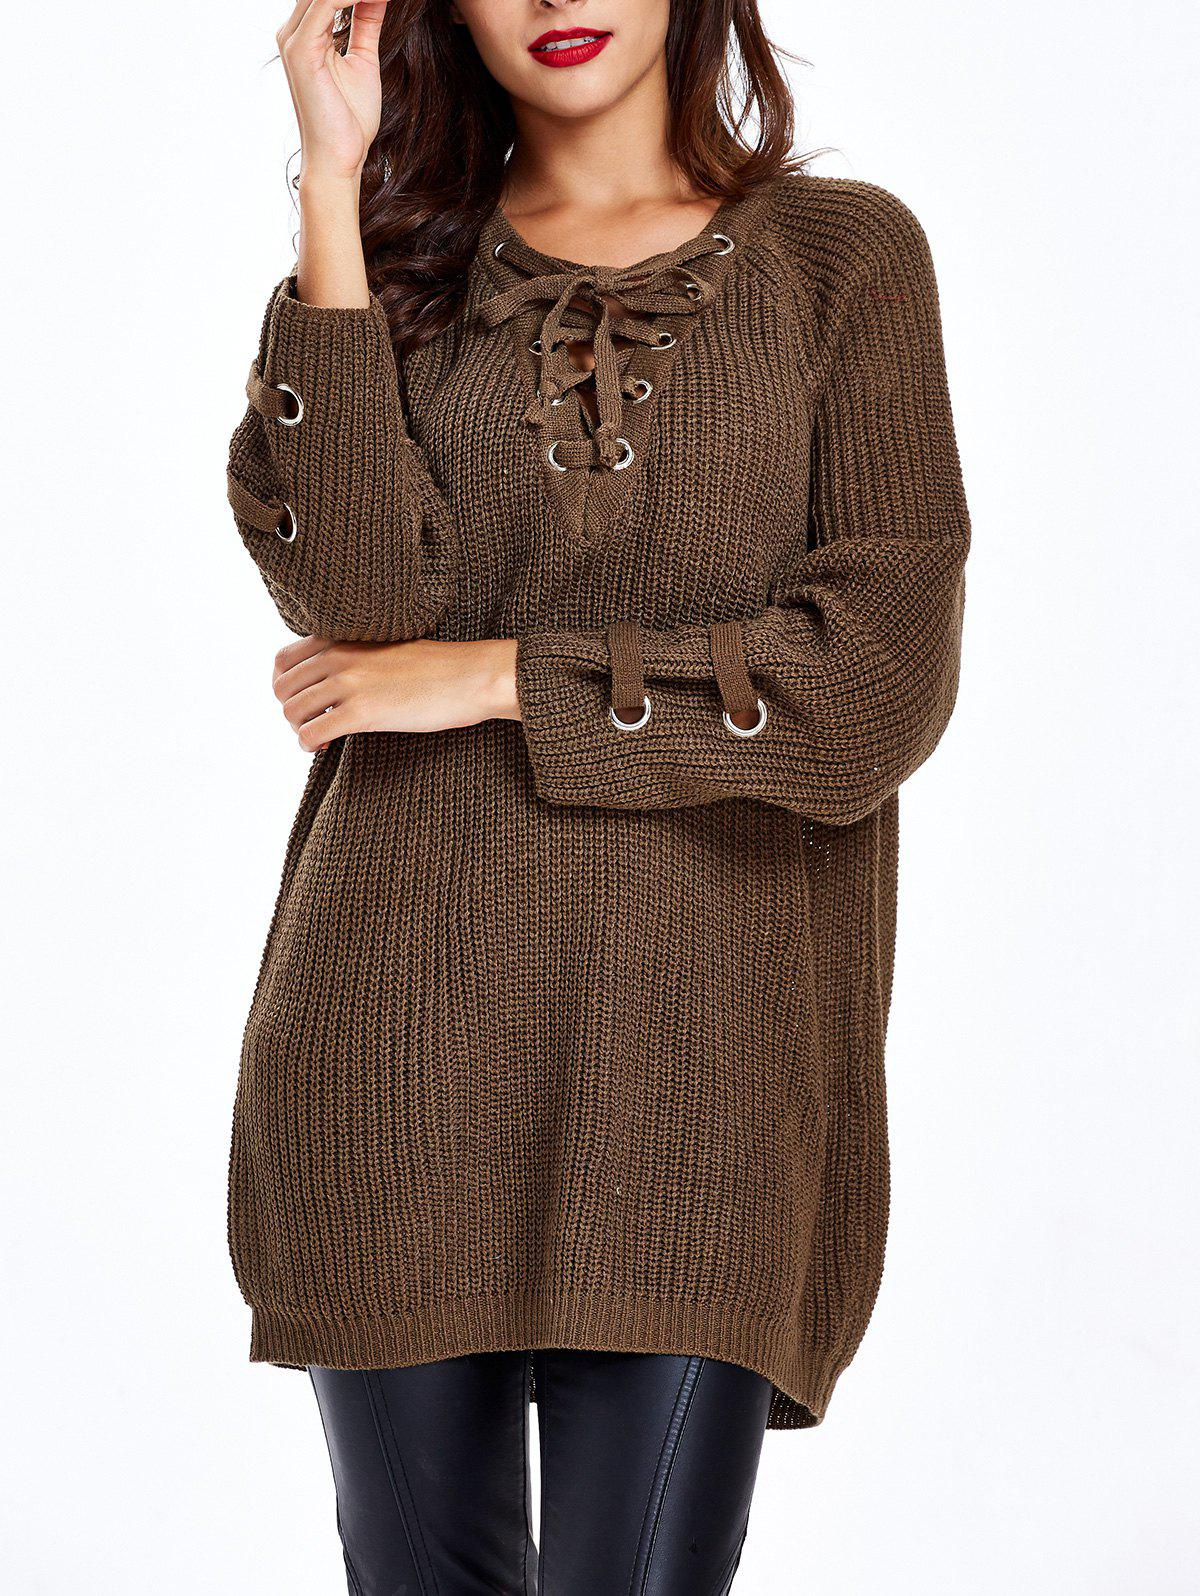 Lace Up Criss-Cross Long SweaterWOMEN<br><br>Size: ONE SIZE; Color: CHOCOLATE; Type: Pullovers; Material: Spandex; Sleeve Length: Full; Collar: V-Neck; Style: Fashion; Pattern Type: Solid; Season: Fall,Spring; Weight: 0.428kg; Package Contents: 1 x Sweater;